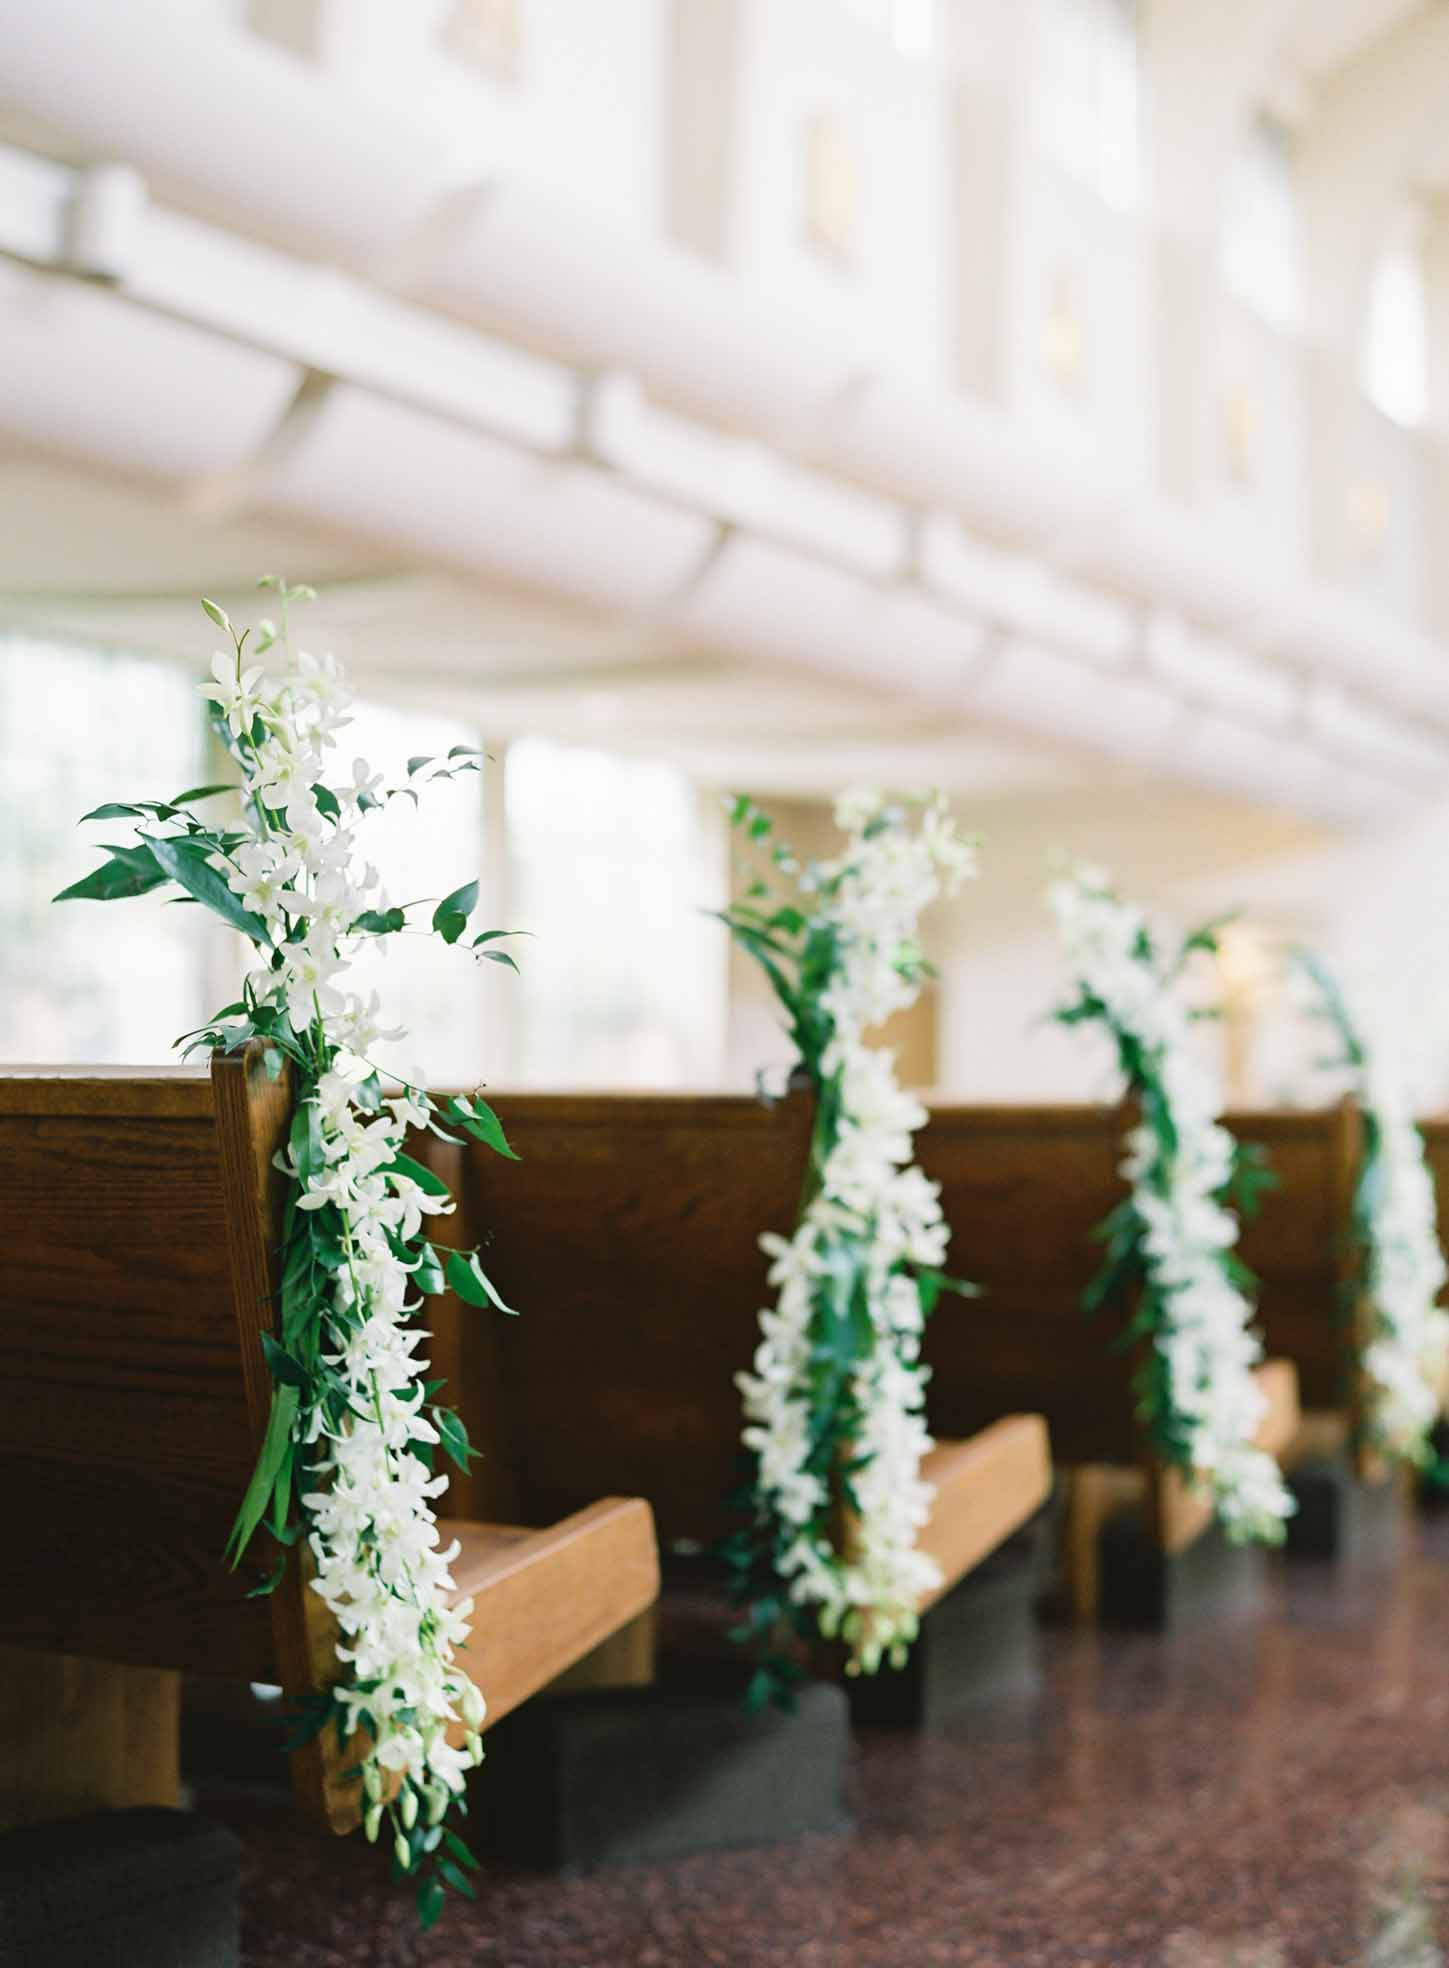 Wedding church pews decorated with white dendrobium orchids - White and Green Wedding - Flora Nova Design